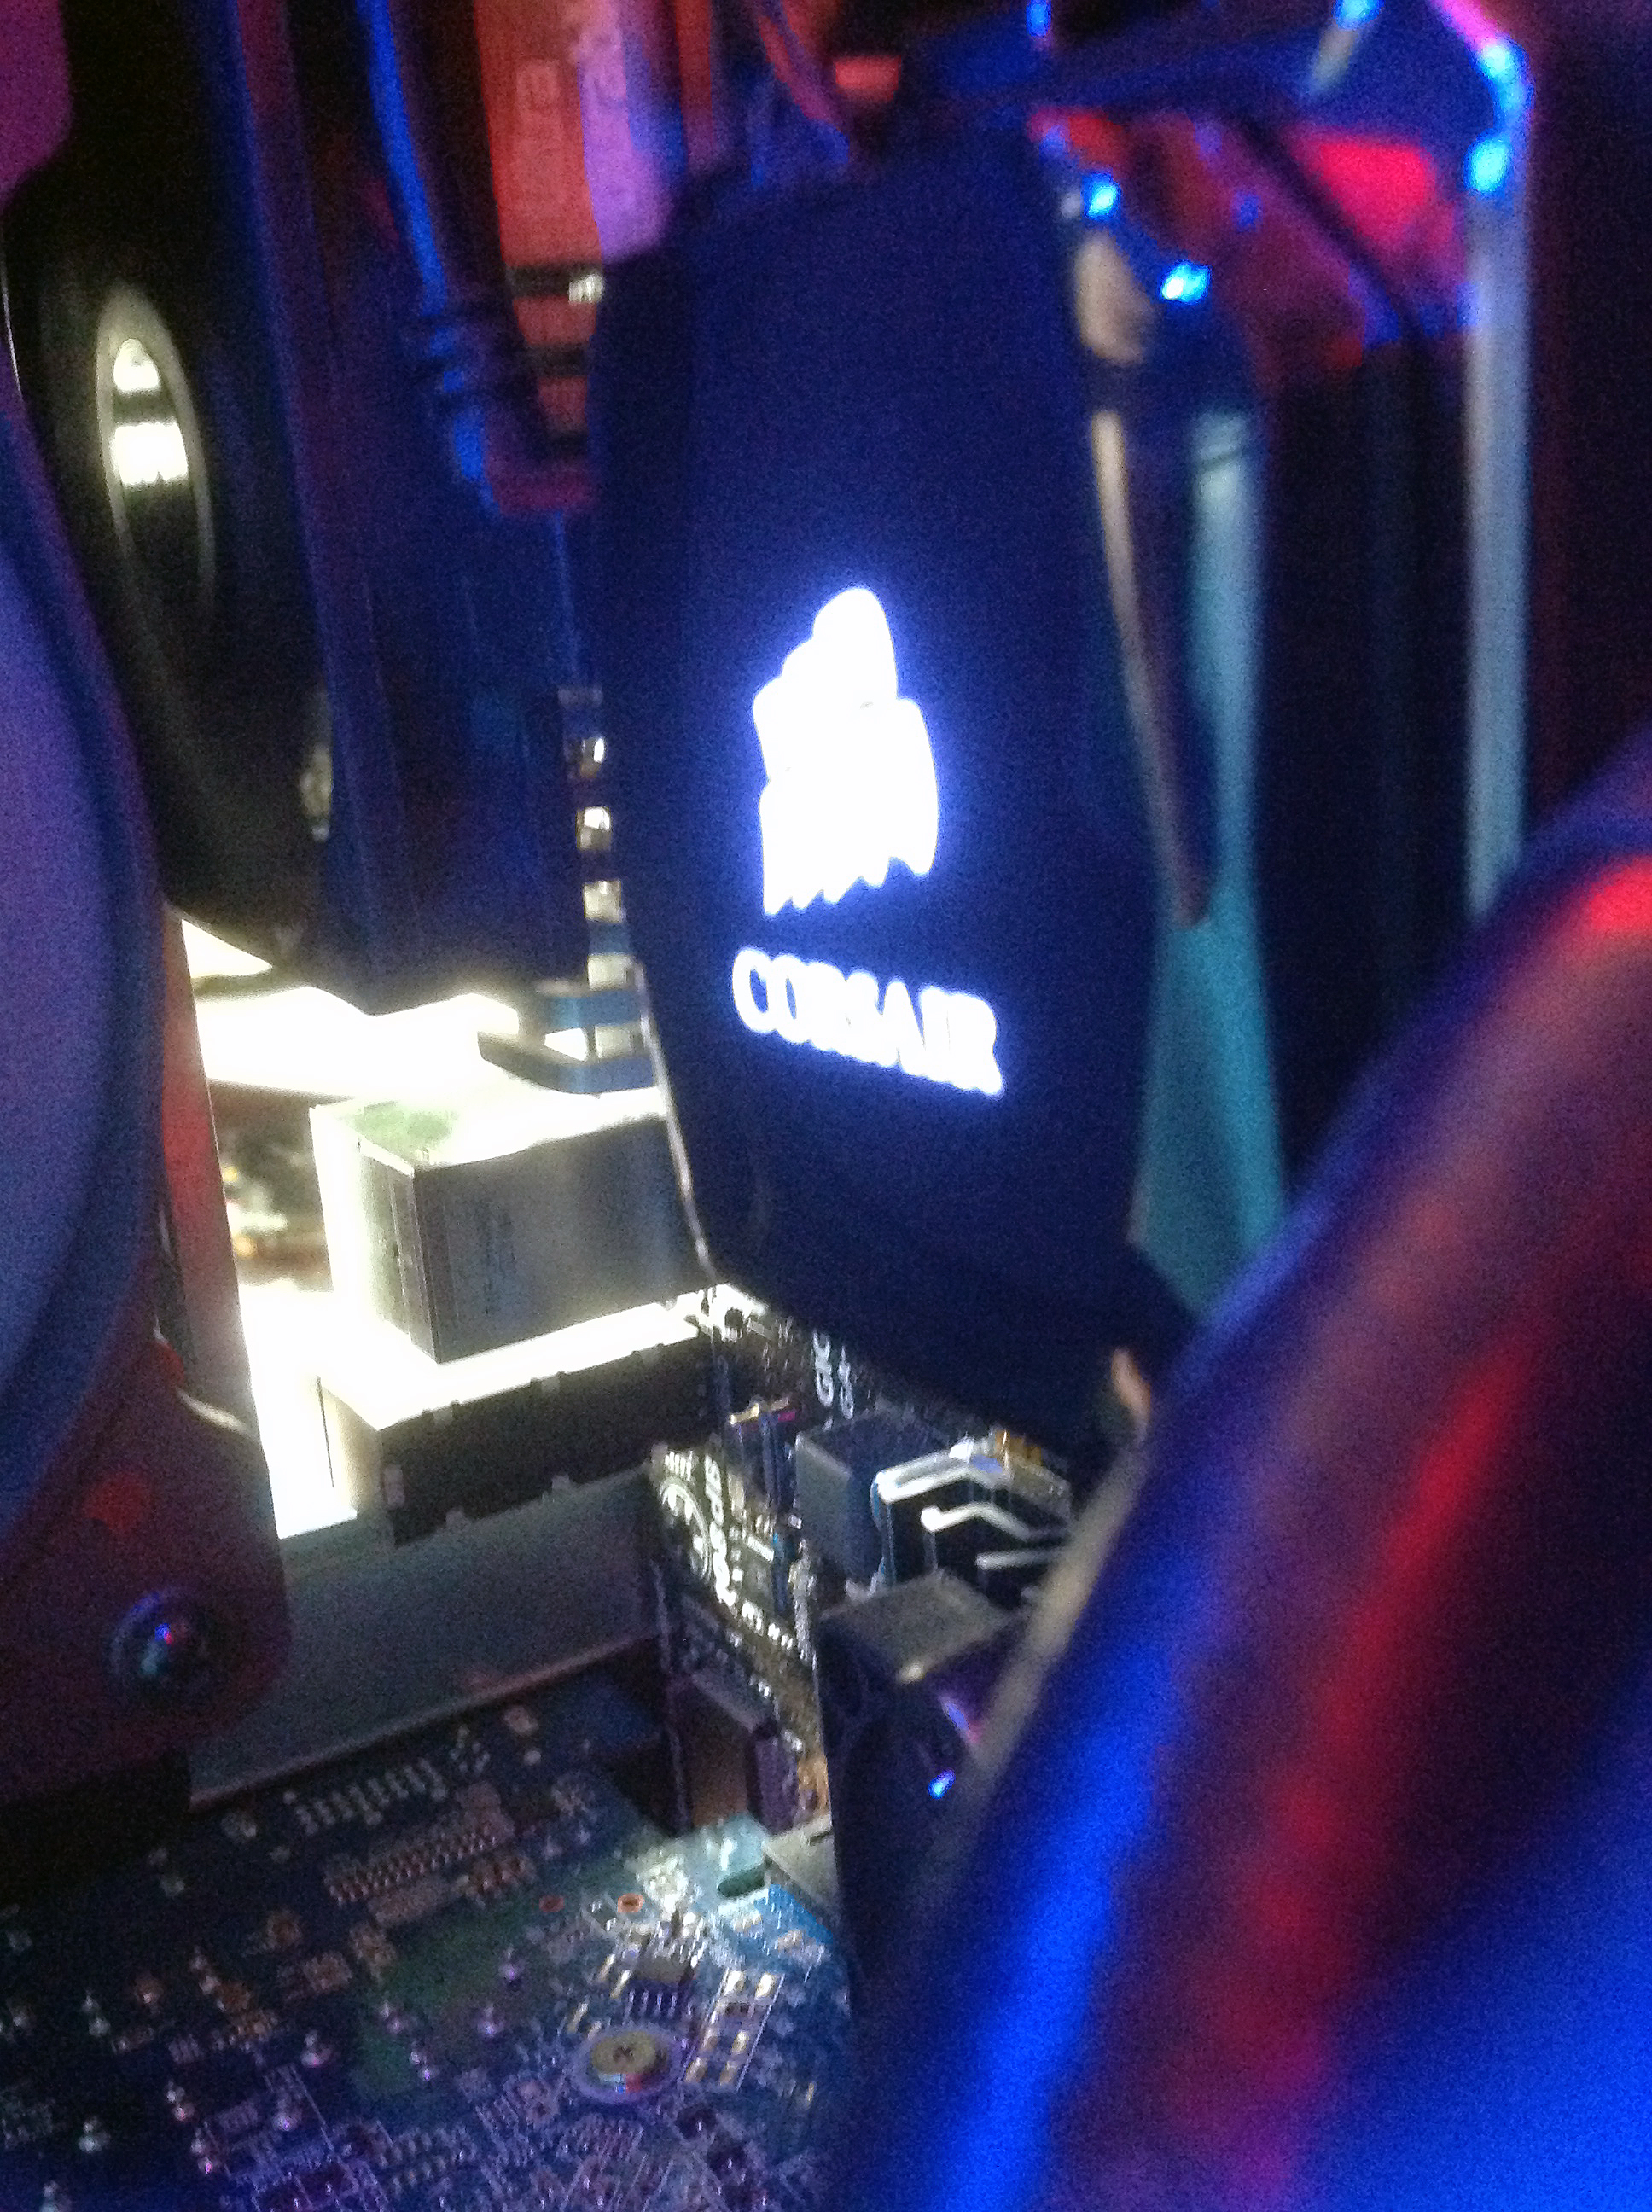 amd cooler fan blowing on to vrm cooler